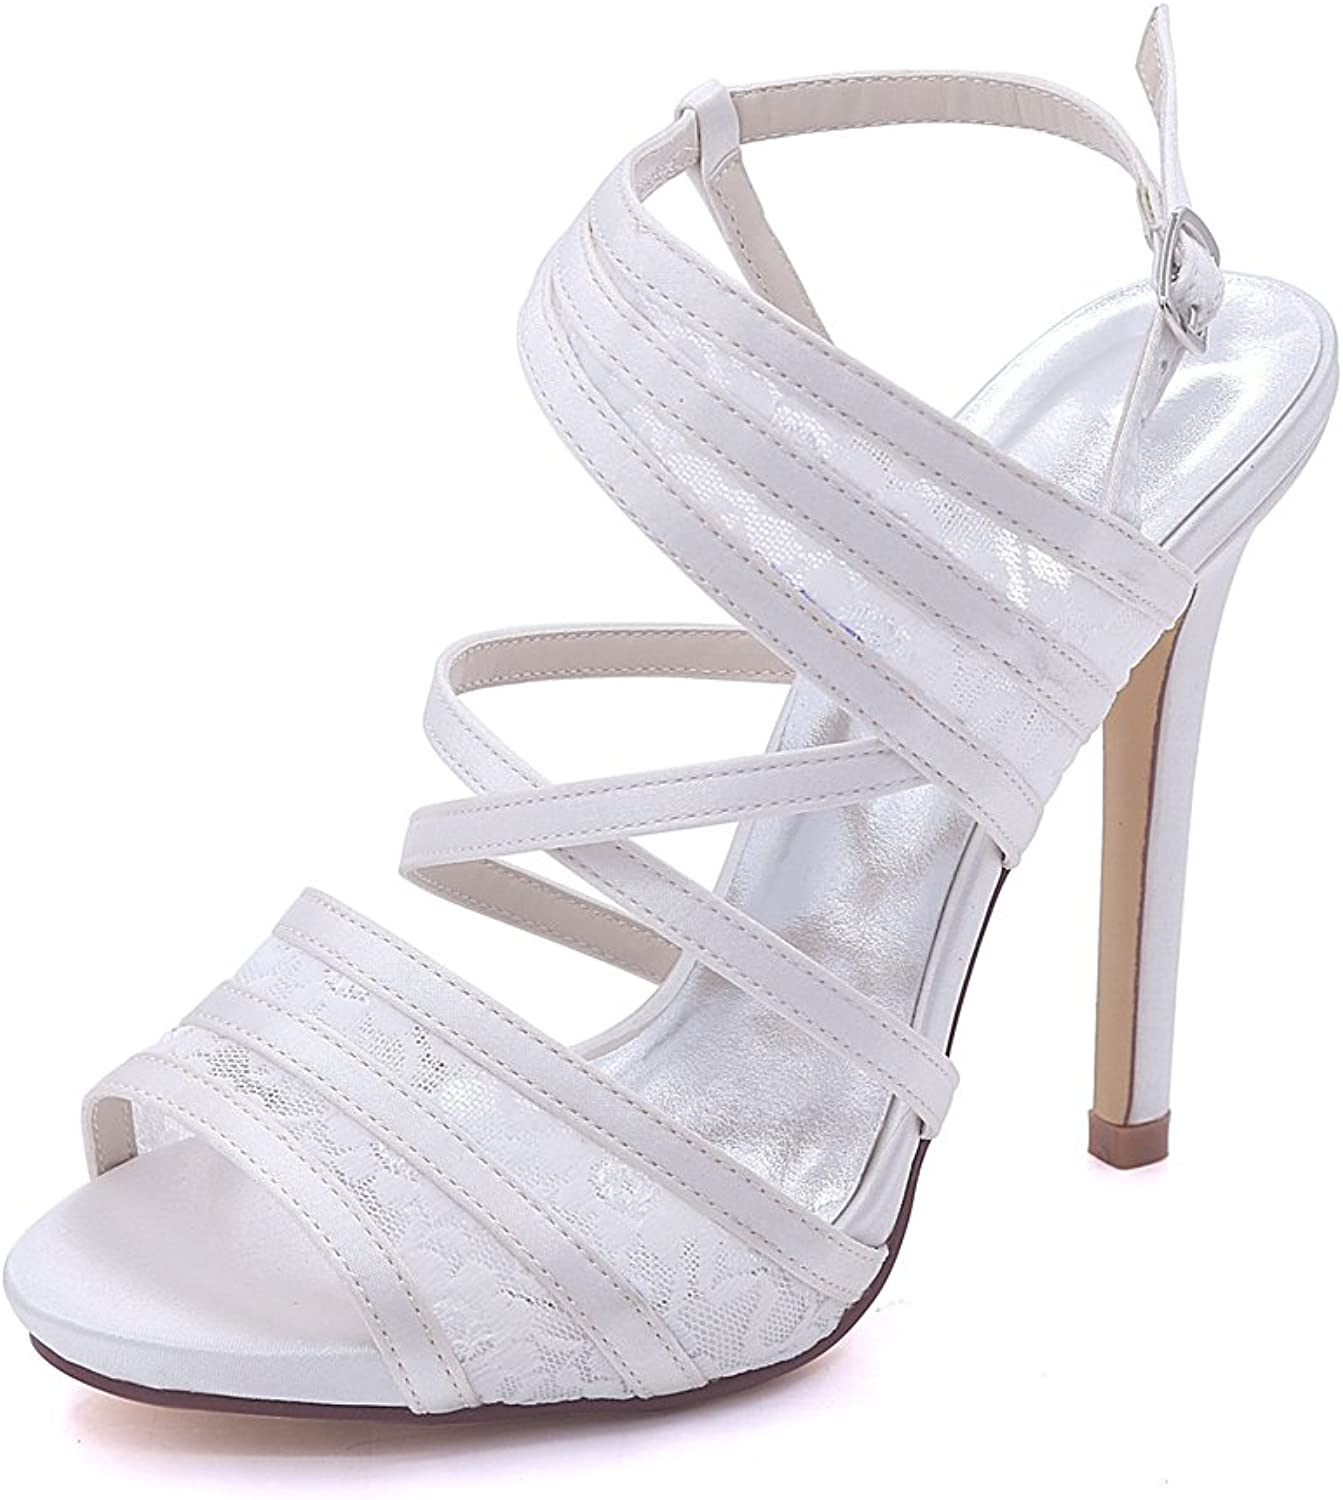 Hjtrust Women's shoes for Prom Evening Party Pumps Heels Tulle Wedding shoes 7216-07 Ivory